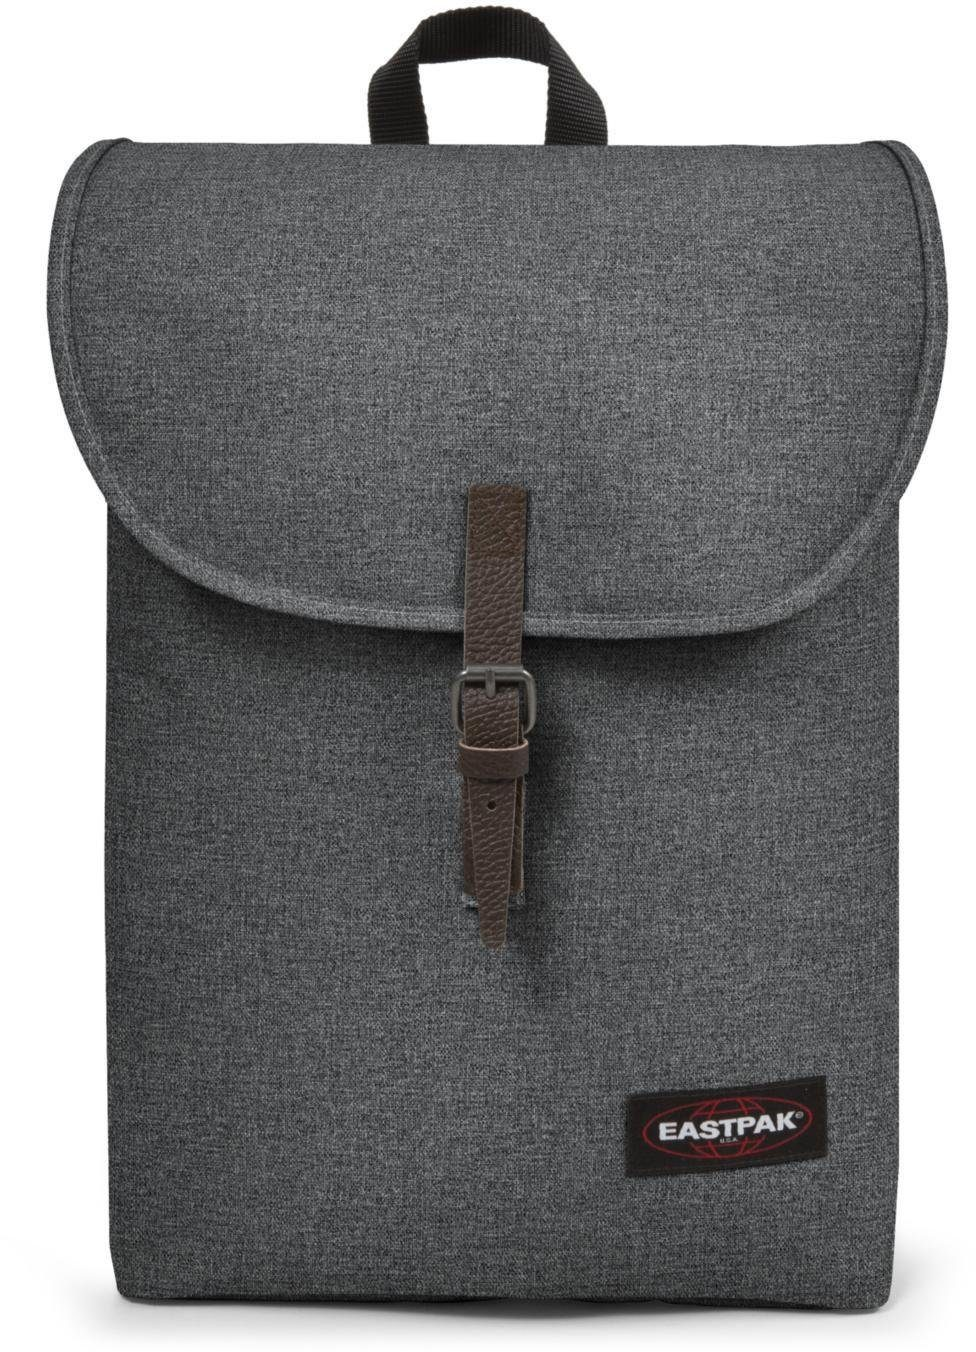 Eastpak Rucksack mit Laptopfach, »CIERA black denim«